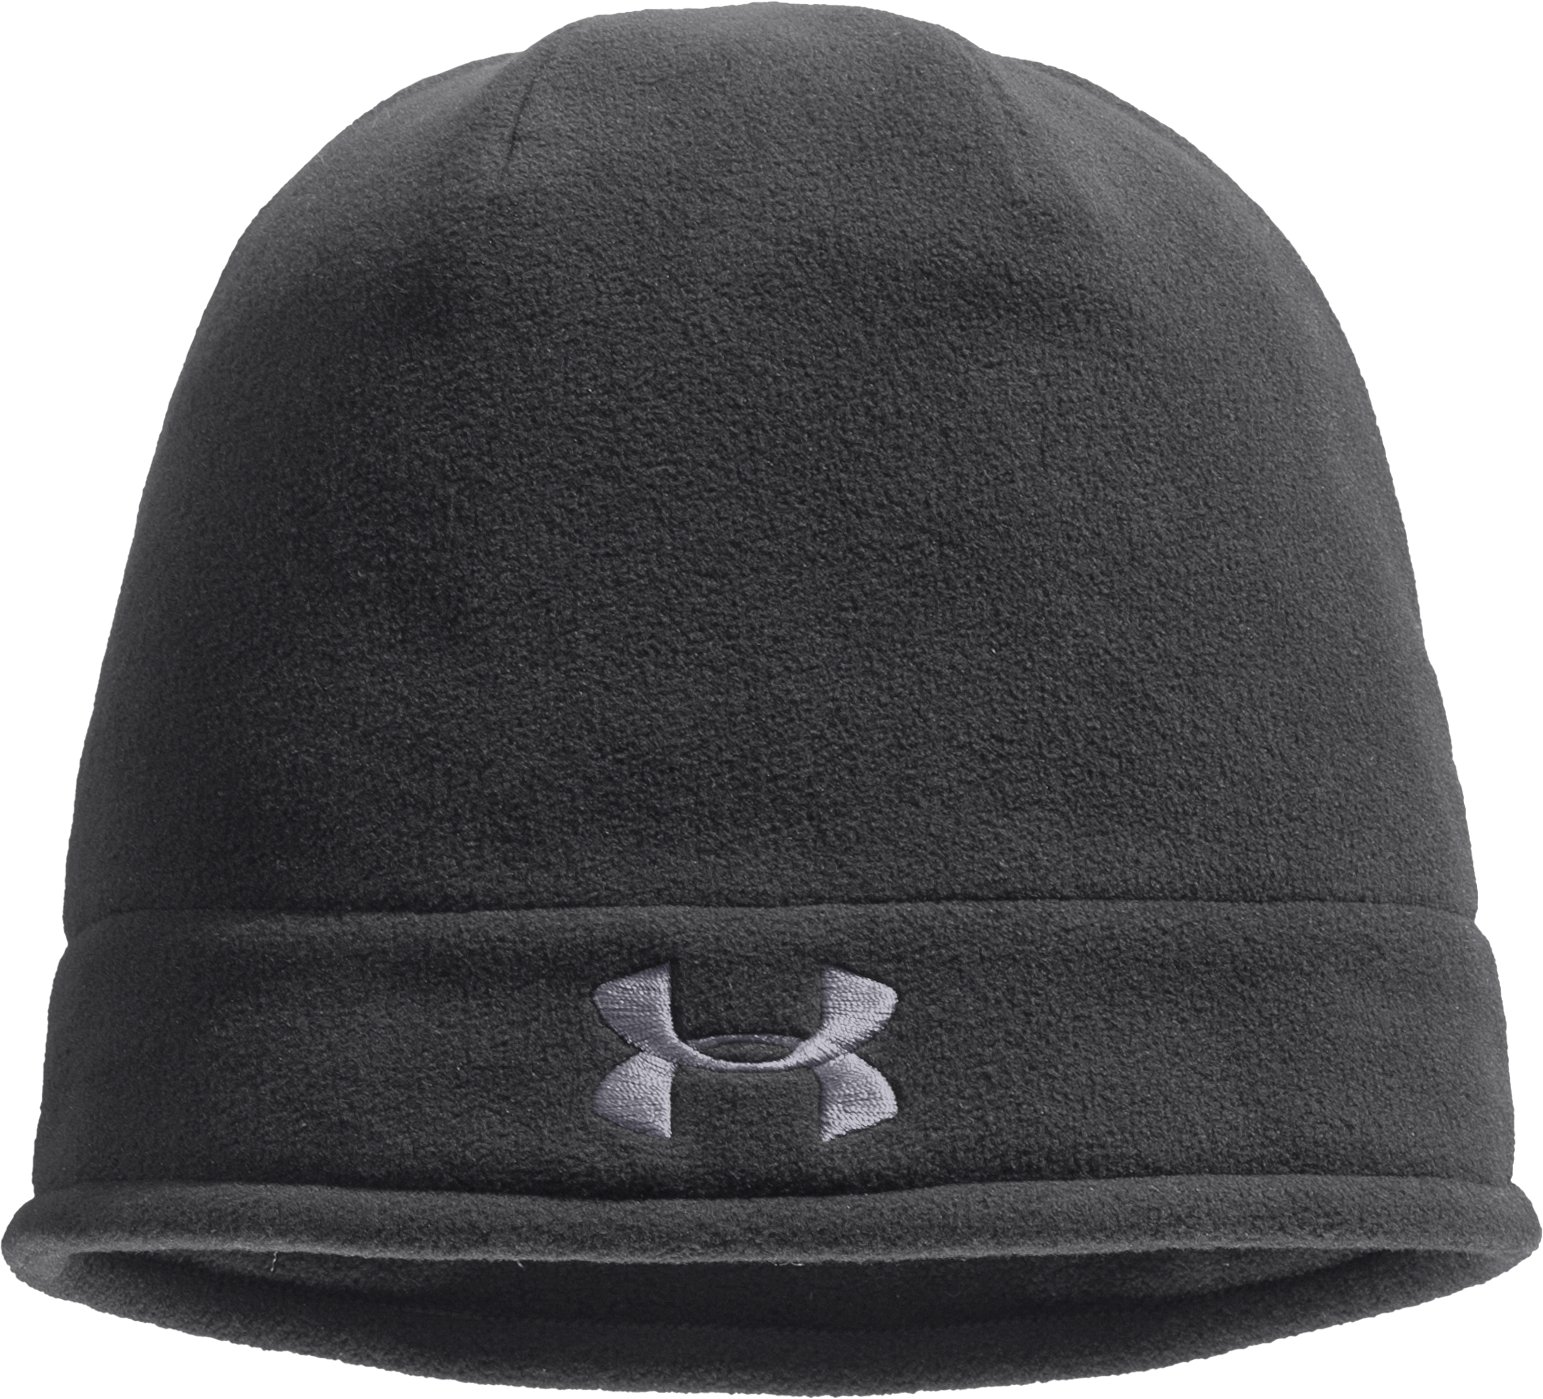 Men's ColdGear® Infrared Fleece Storm Beanie, Graphite, zoomed image